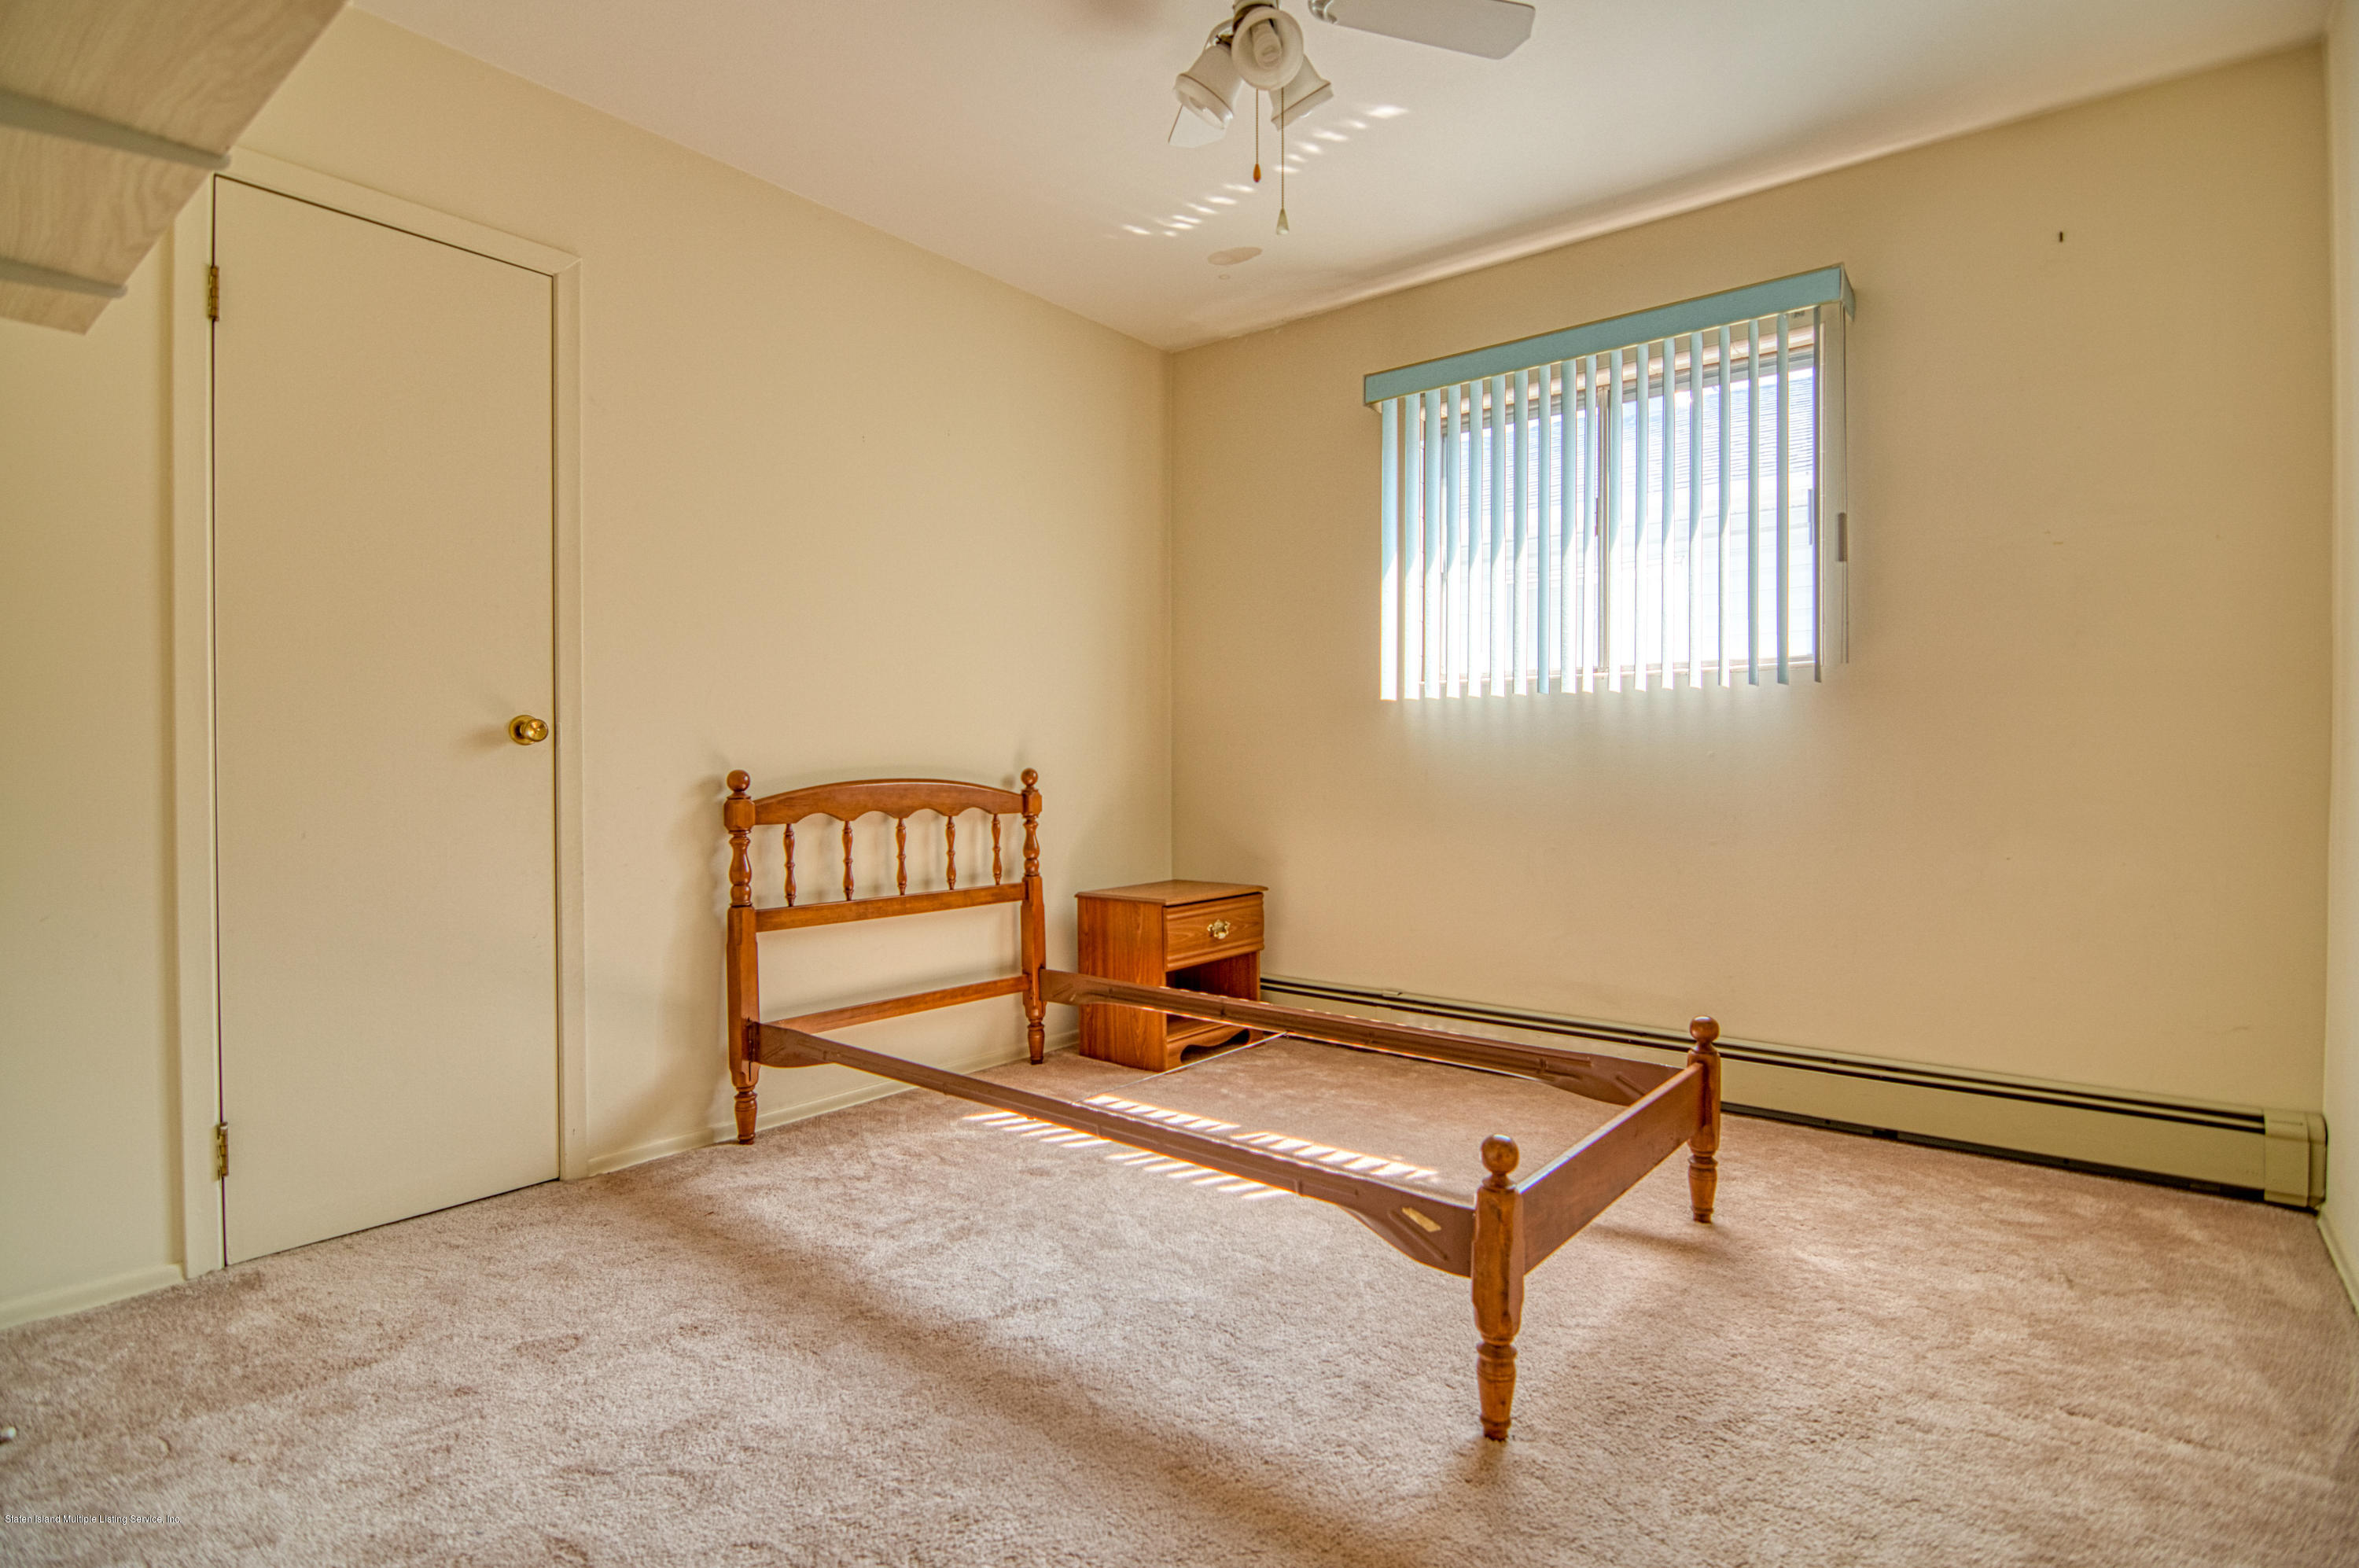 Single Family - Detached 124 Queen Street  Staten Island, NY 10314, MLS-1131413-11